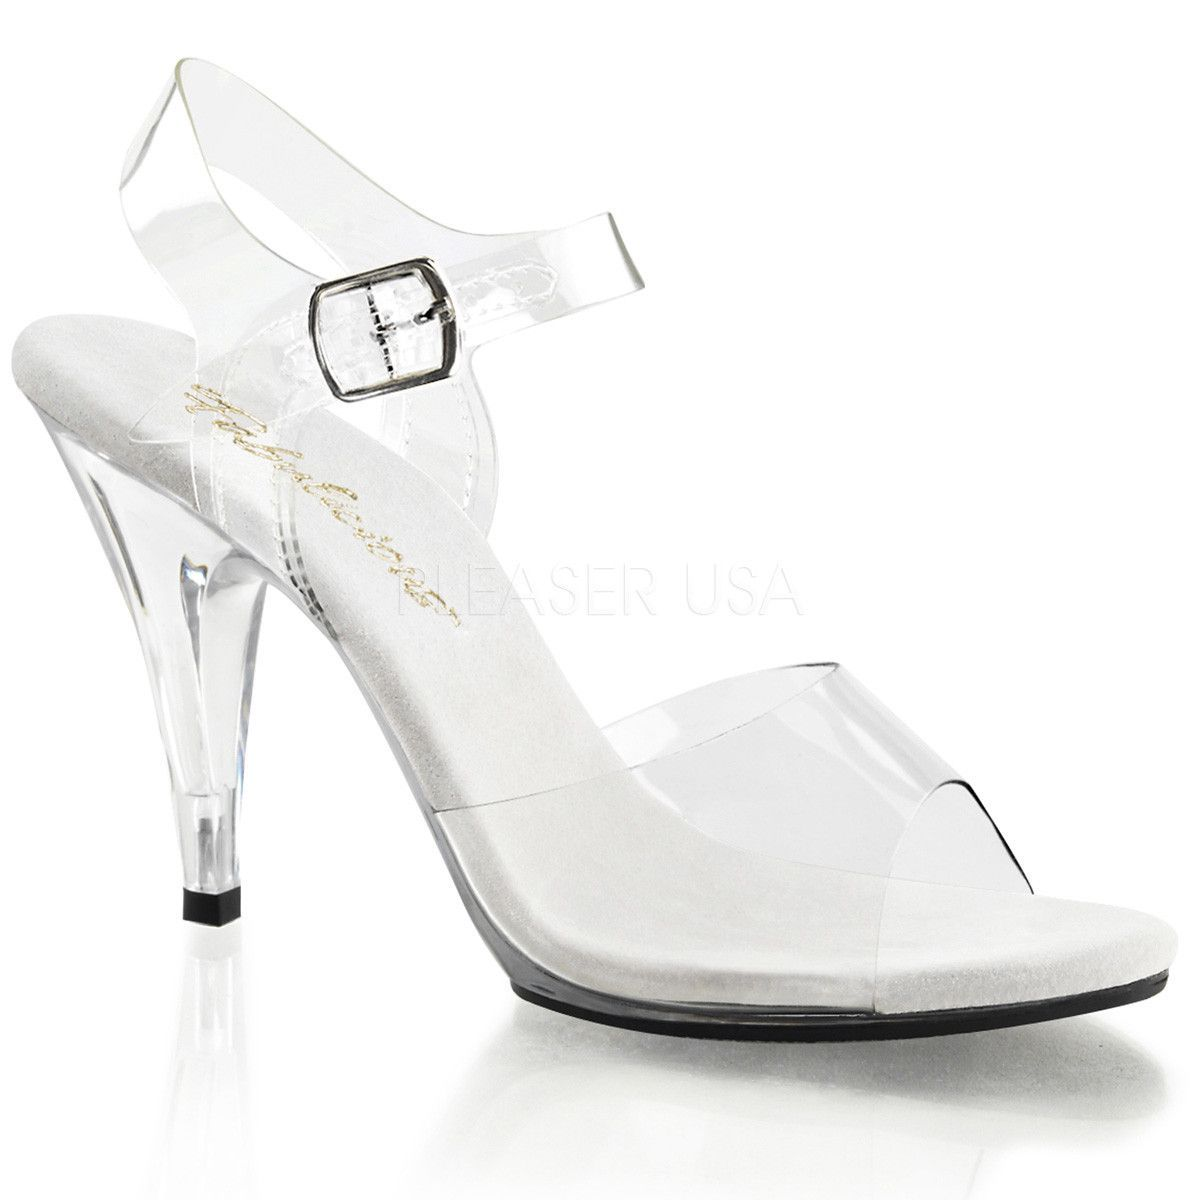 18f69184486 FABULICIOUS CARESS-408 Clear-Clear Ankle Strap Sandals. 4